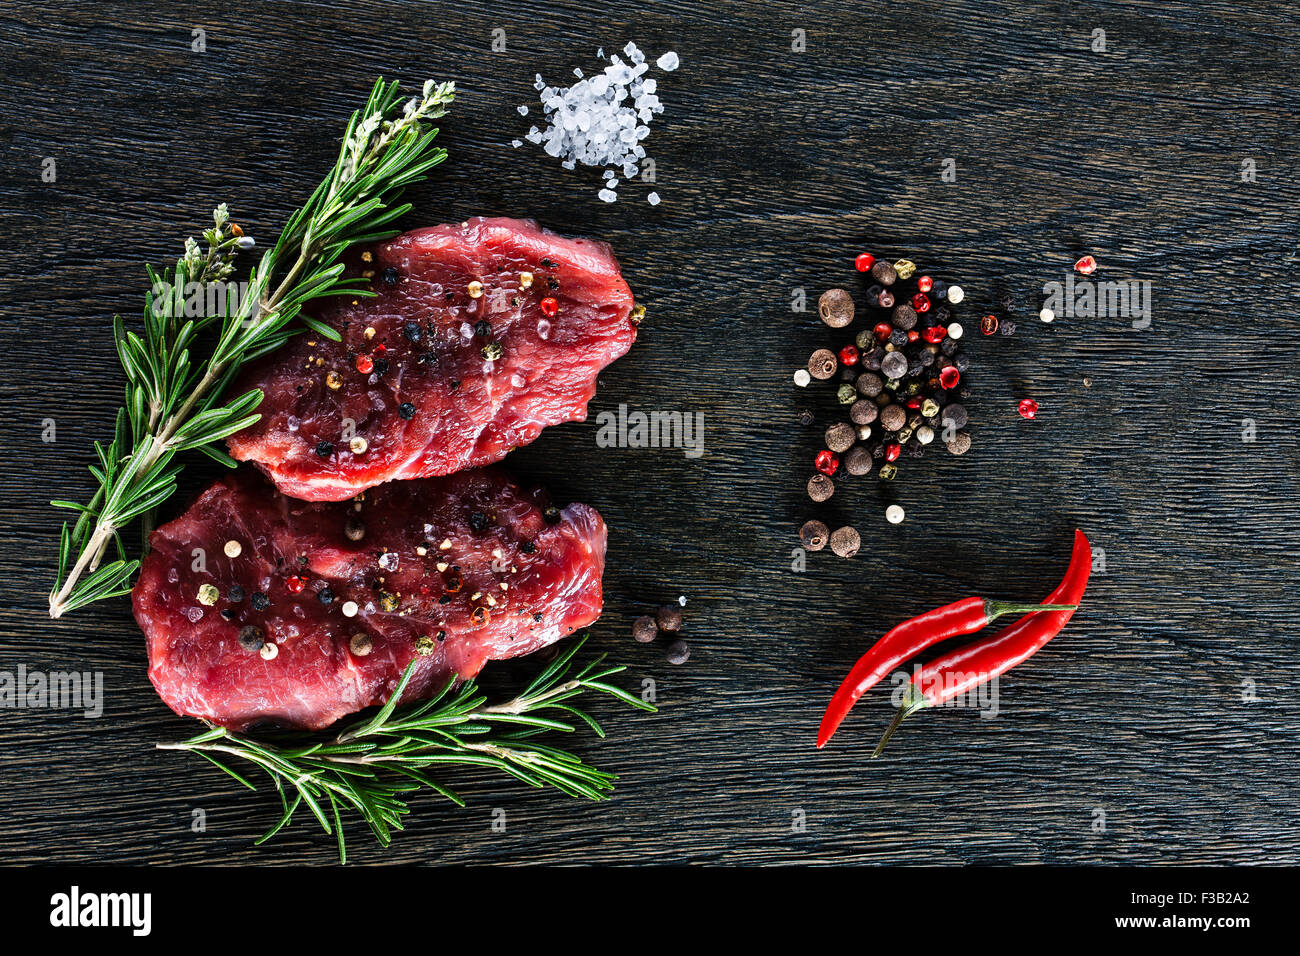 Two beef steaks garnished with a couple of rosemary twigs, dwarf chili peppers, sea salt granules and peppercorns Stock Photo